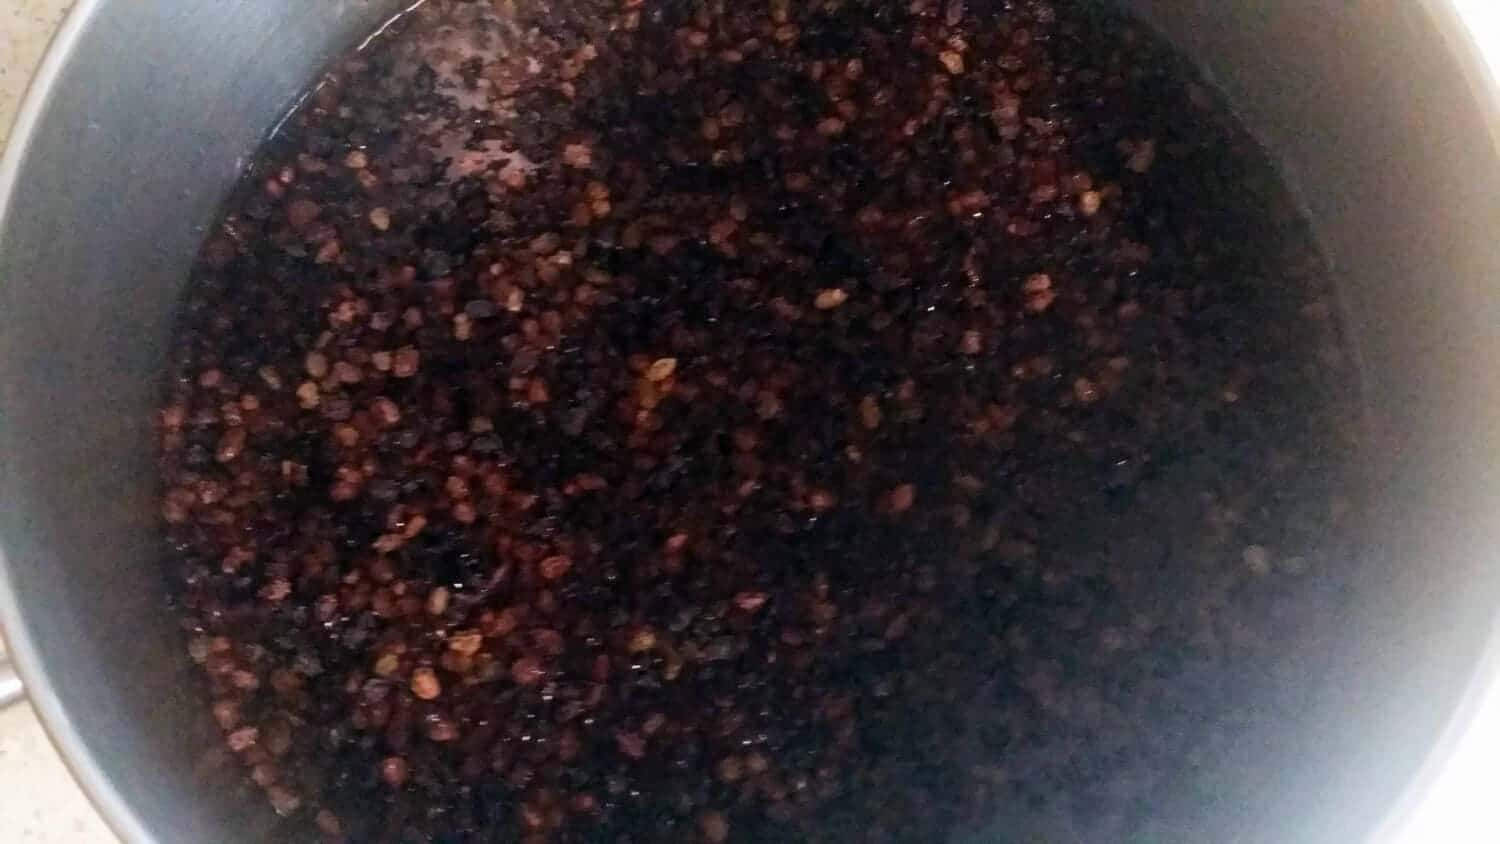 elderberries rehydrating in pot of water